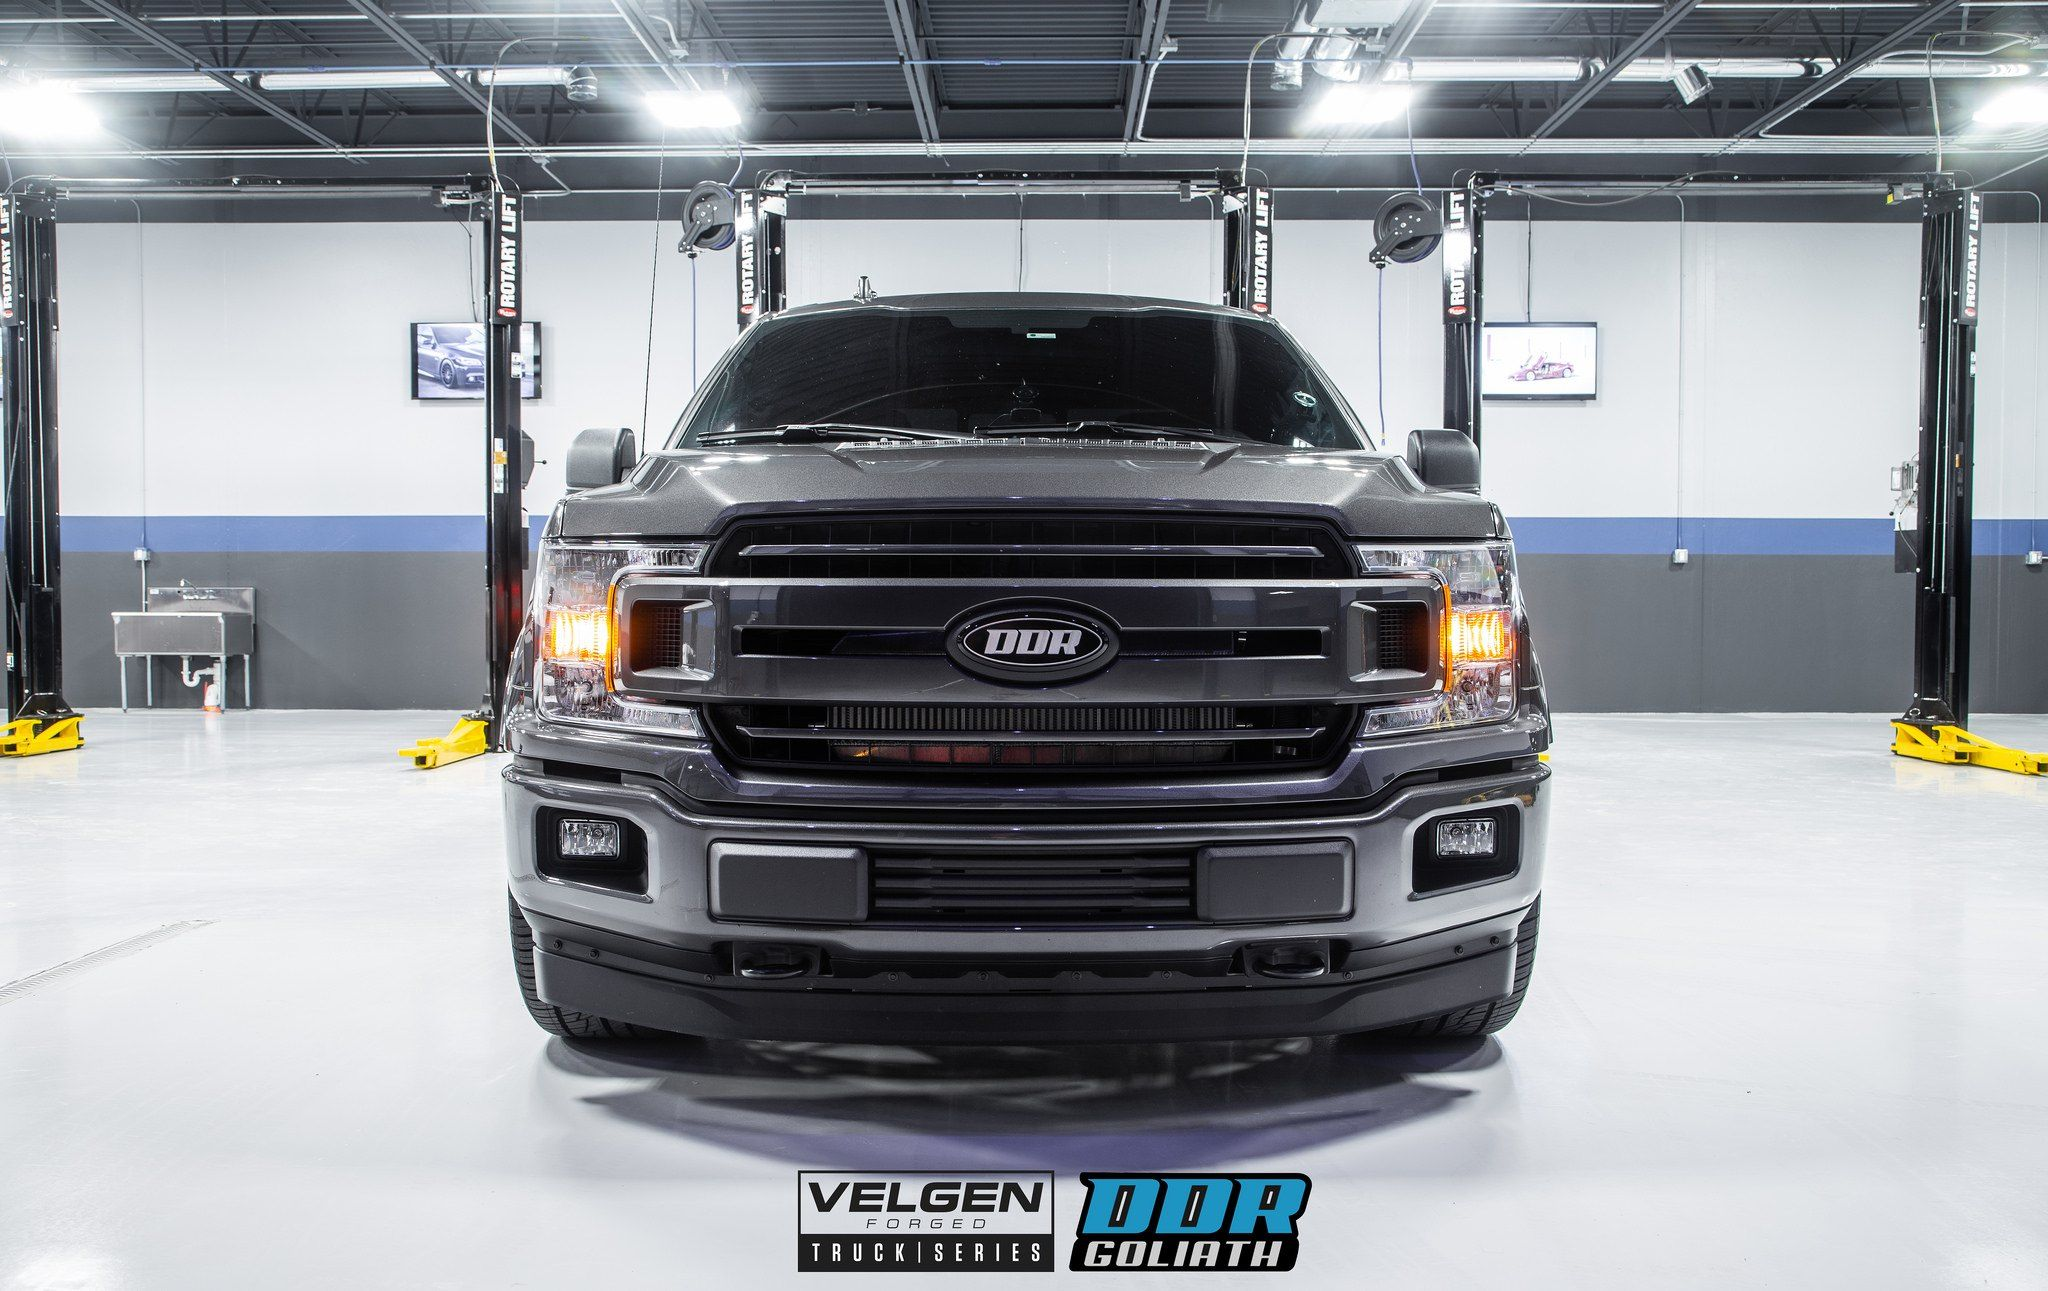 Gray Ford F 150 Gets Blacked Out Grille For Aggressive Look Carid Com Gallery Ford F150 Ford Grilles